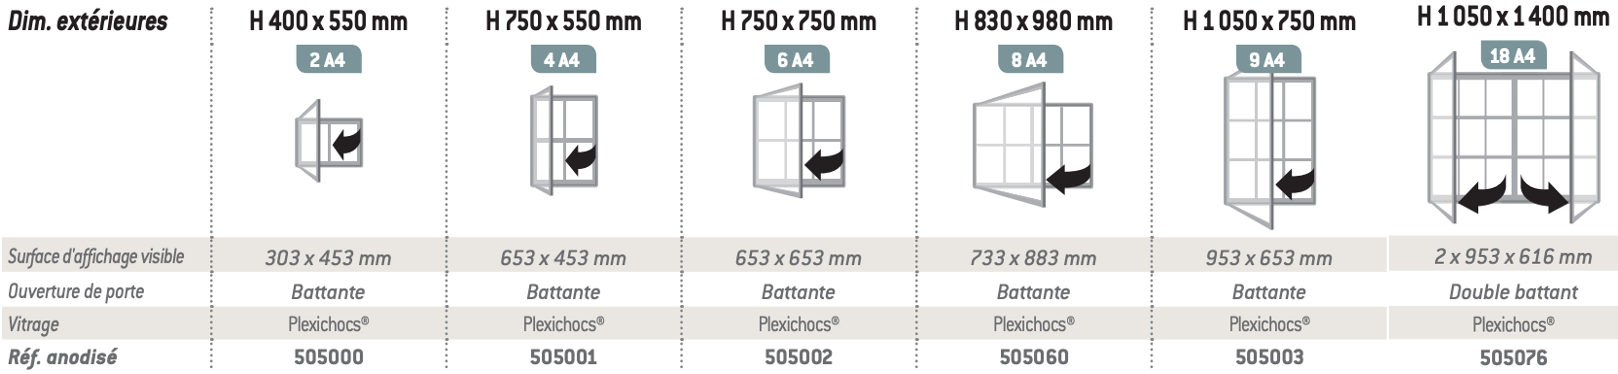 dimensions-vitrine-tradition-exterieure.png